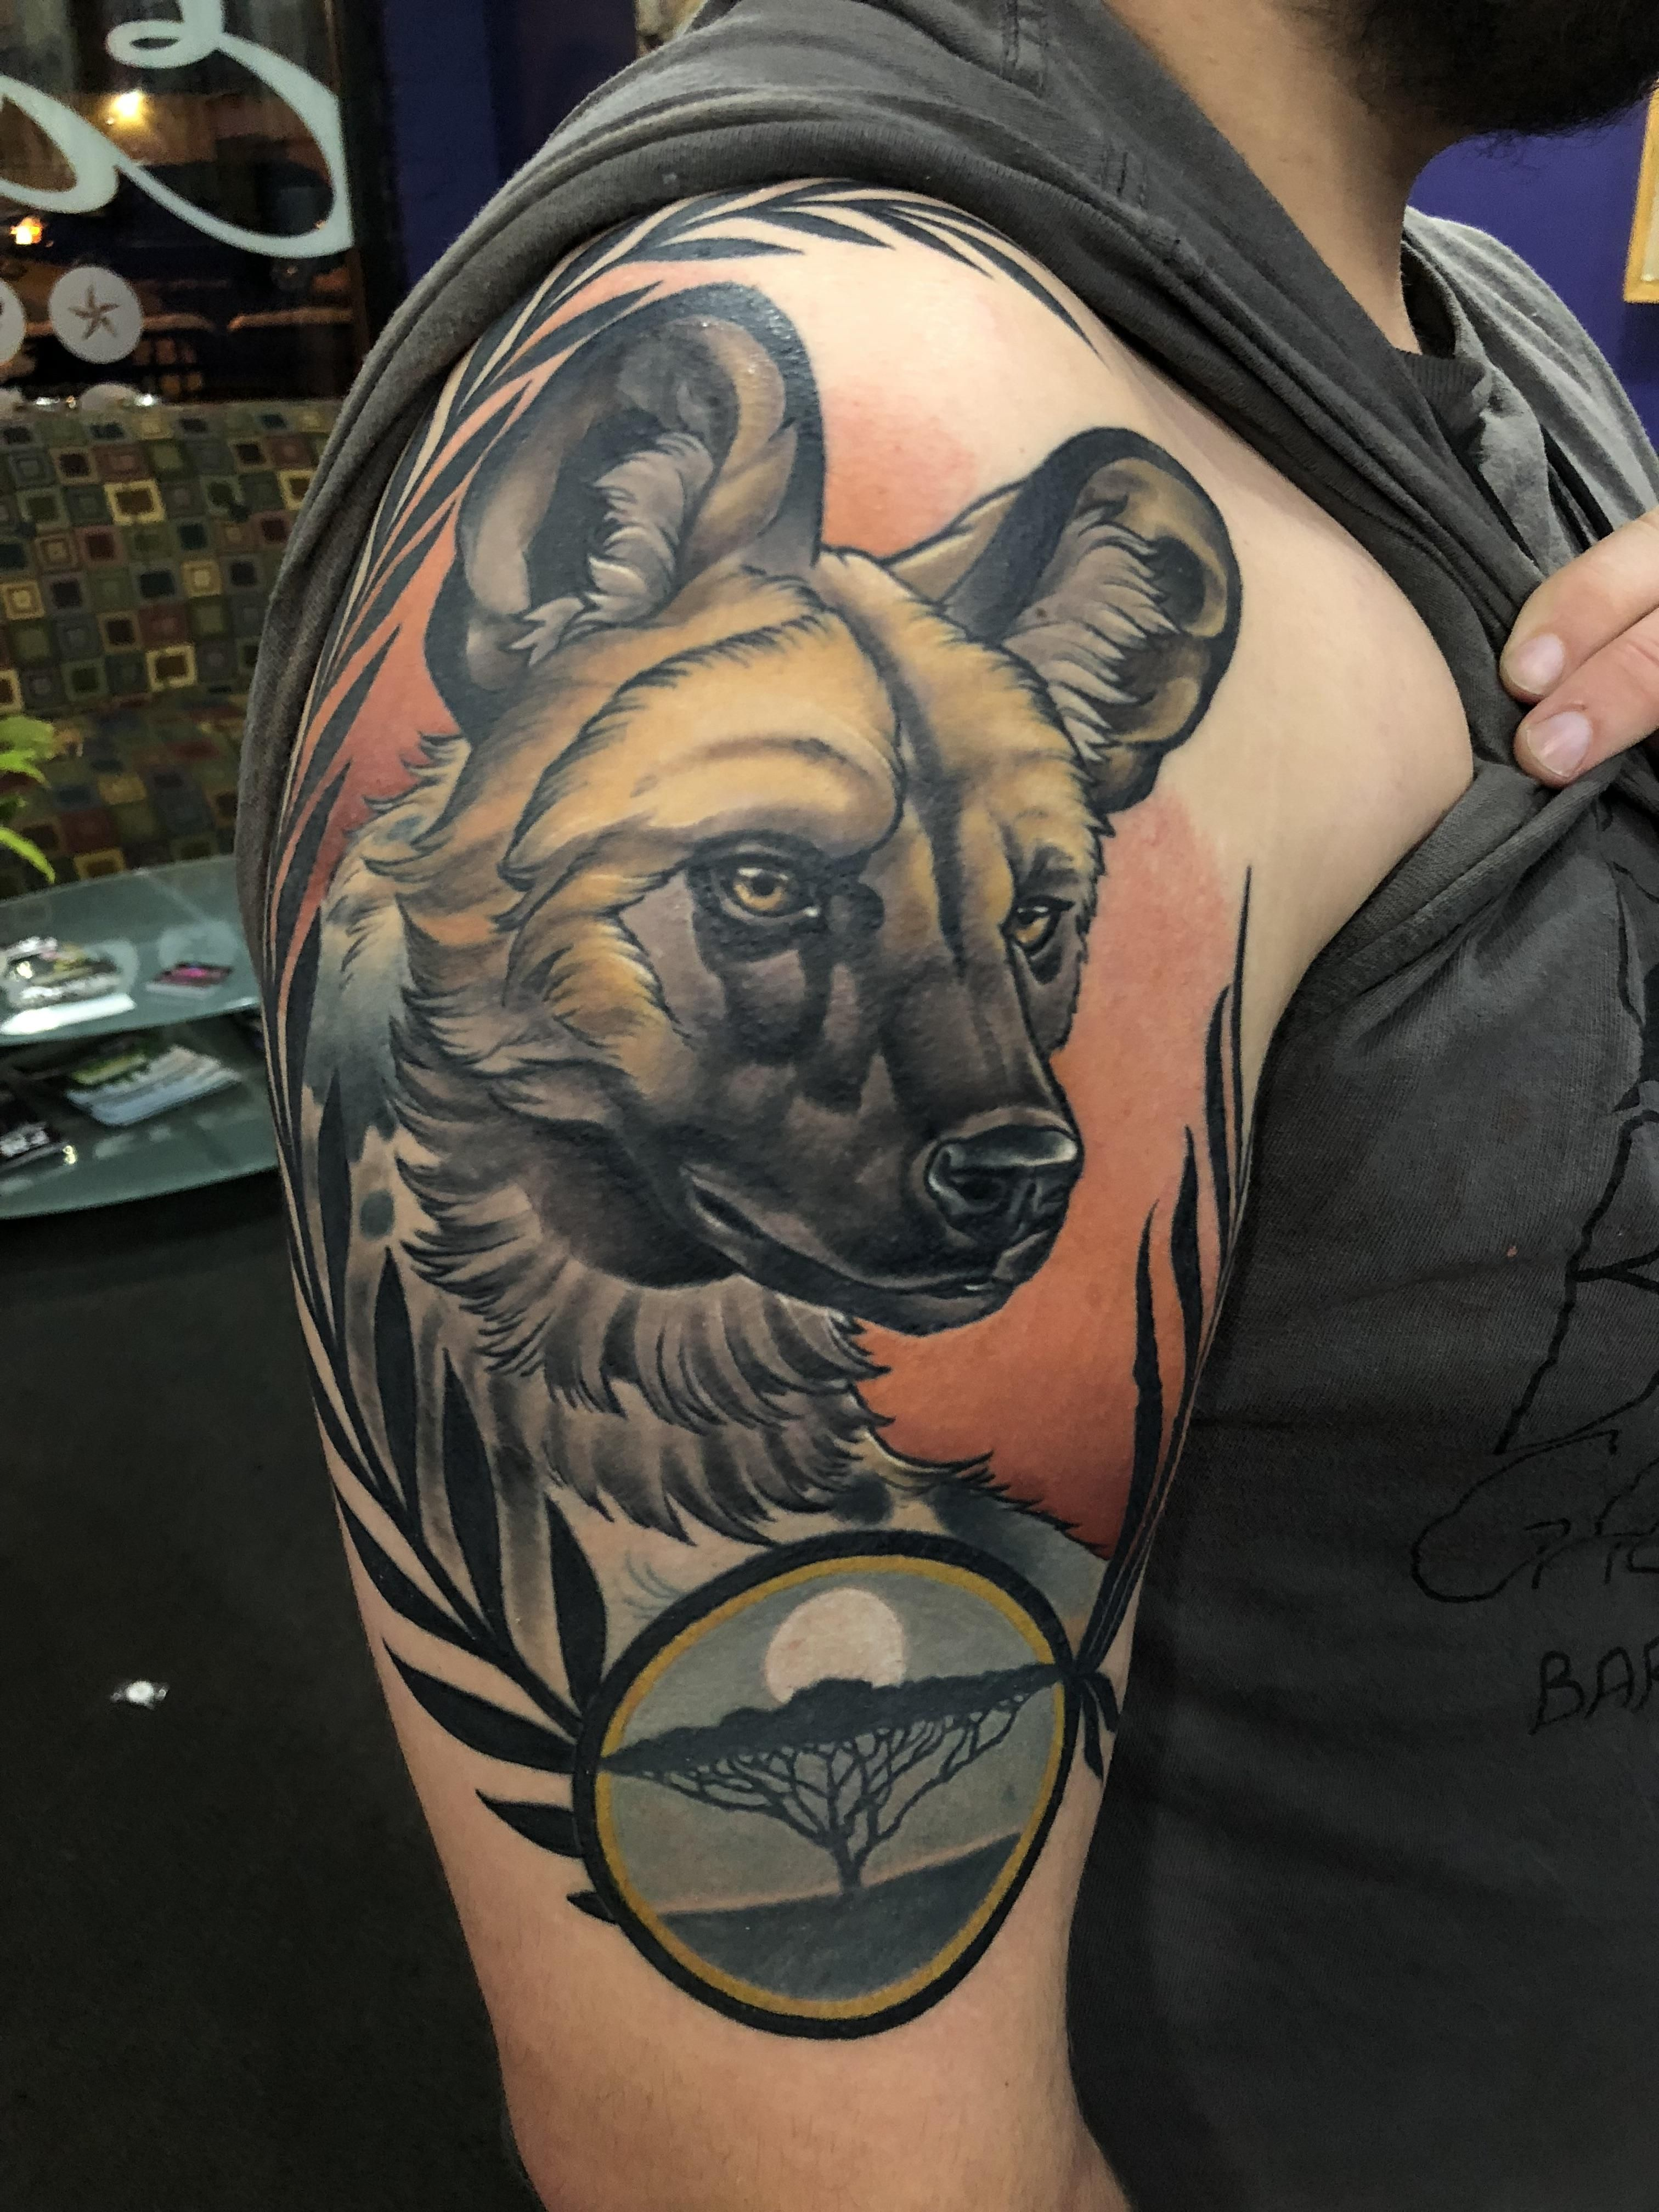 African Wild Dog By James Hurley At Eclectic Tattoo Shop In East Lansing Michigan African Wild Dog African Tattoo Africa Tattoos